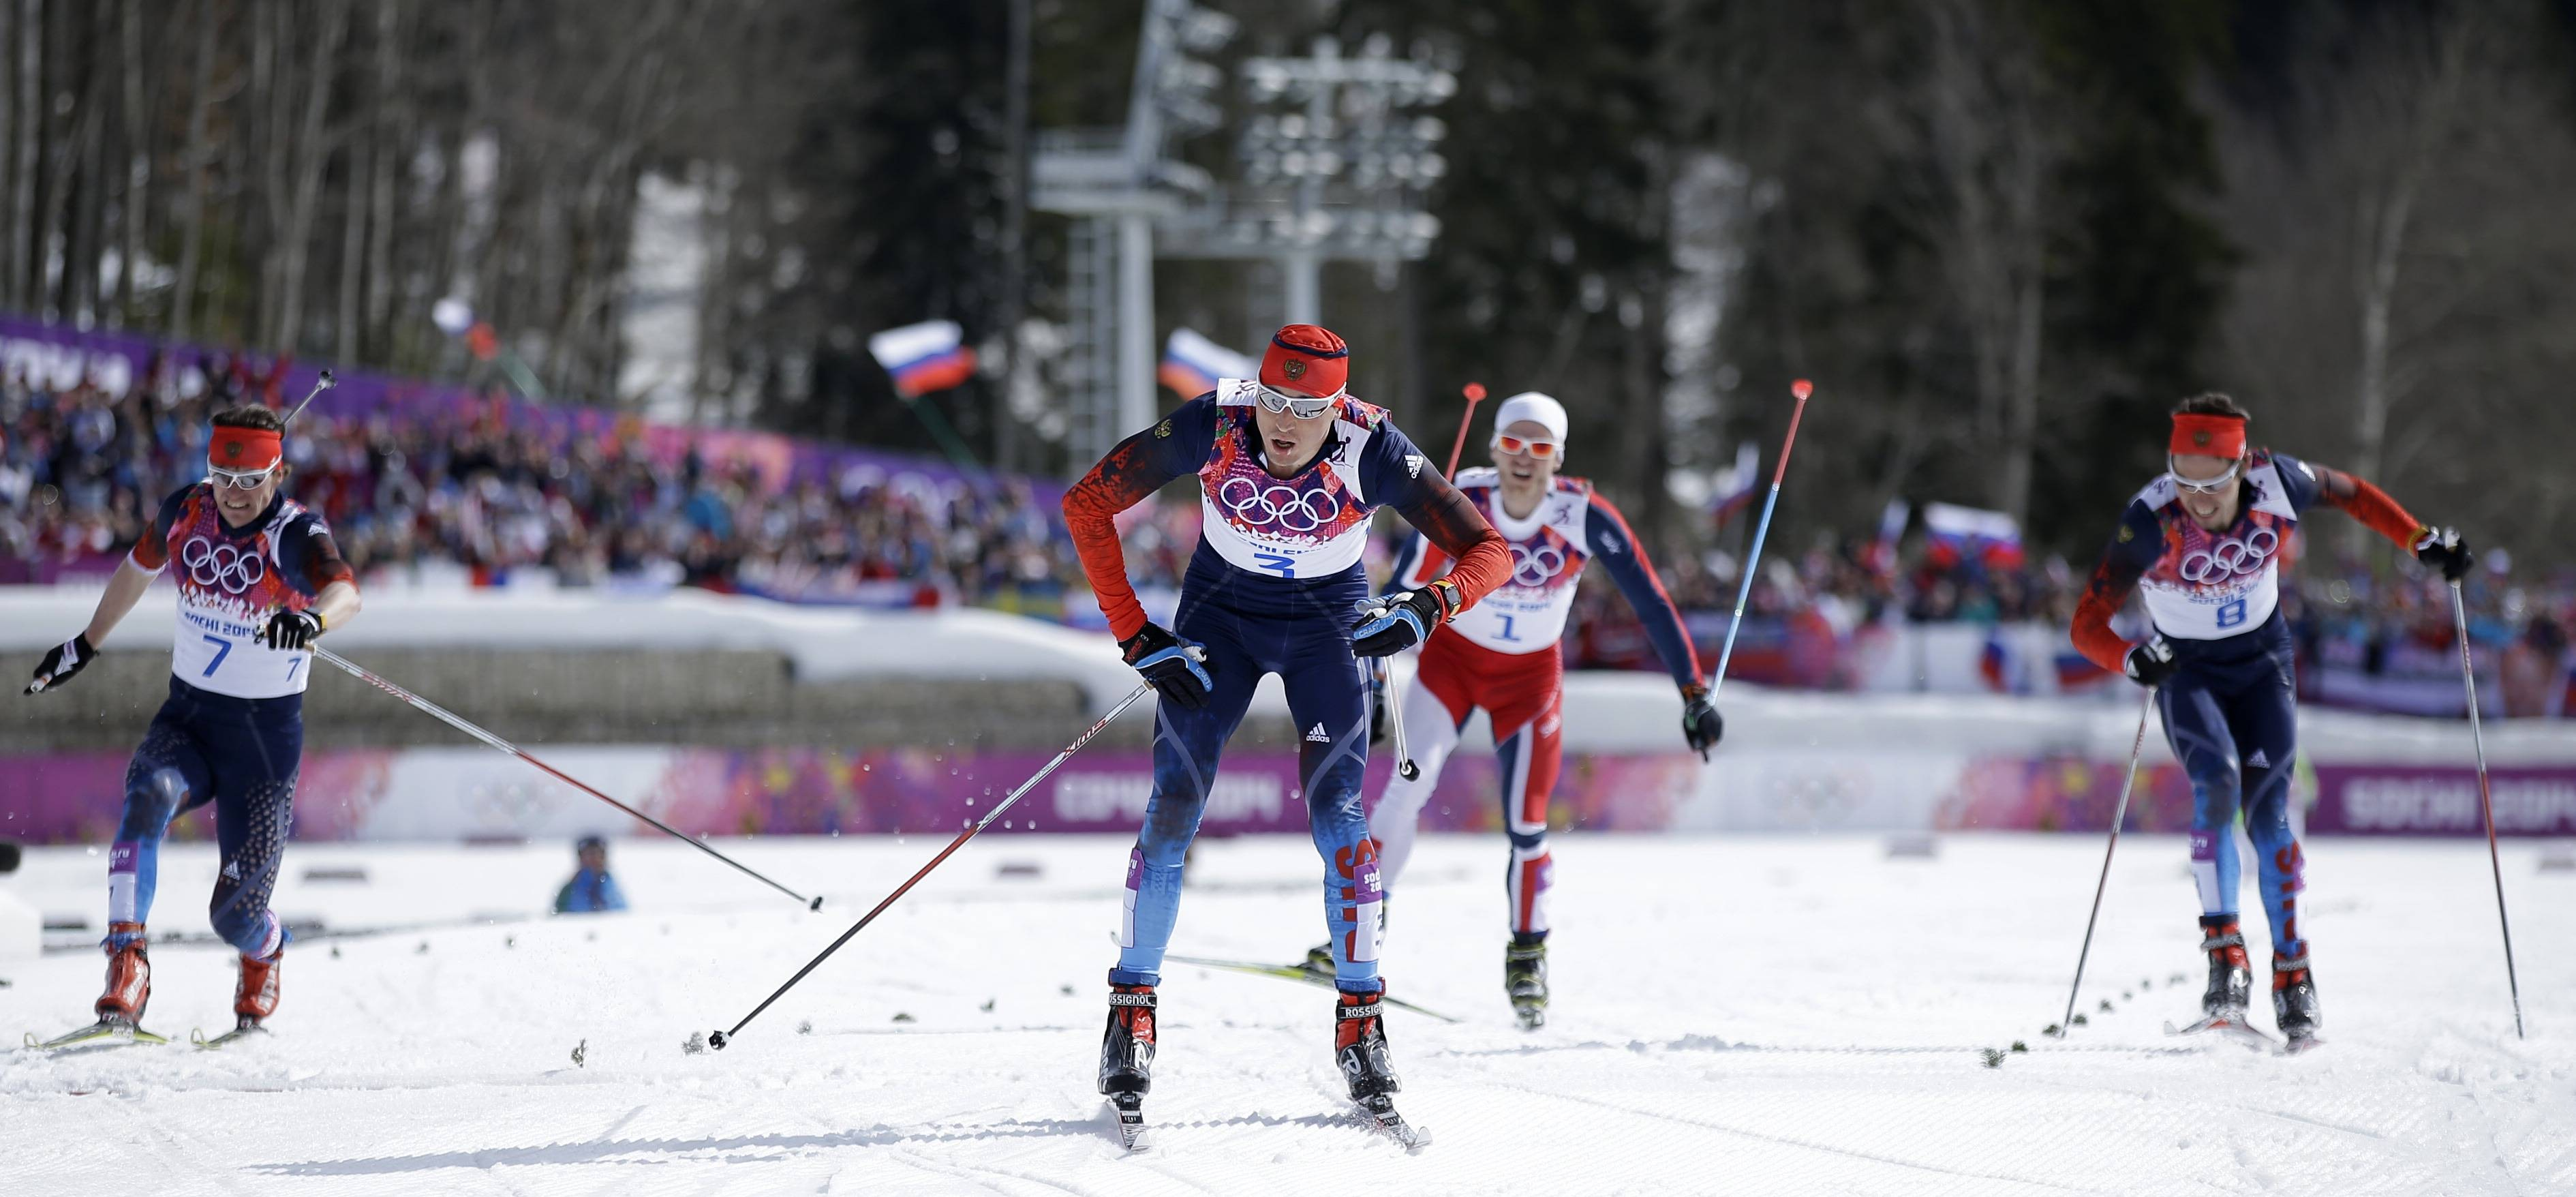 Russia's gold medal winner Alexander Legkov, center, crosses the finish line ahead of Russia's silver medal winner Maxim Vylegzhanin, left, and Russia's bronze medal winner Ilia Chernousov, right, in the men's 50K cross-country race at the 2014 Winter Olympics, Sunday, Feb. 23, 2014, in Krasnaya Polyana, Russia.